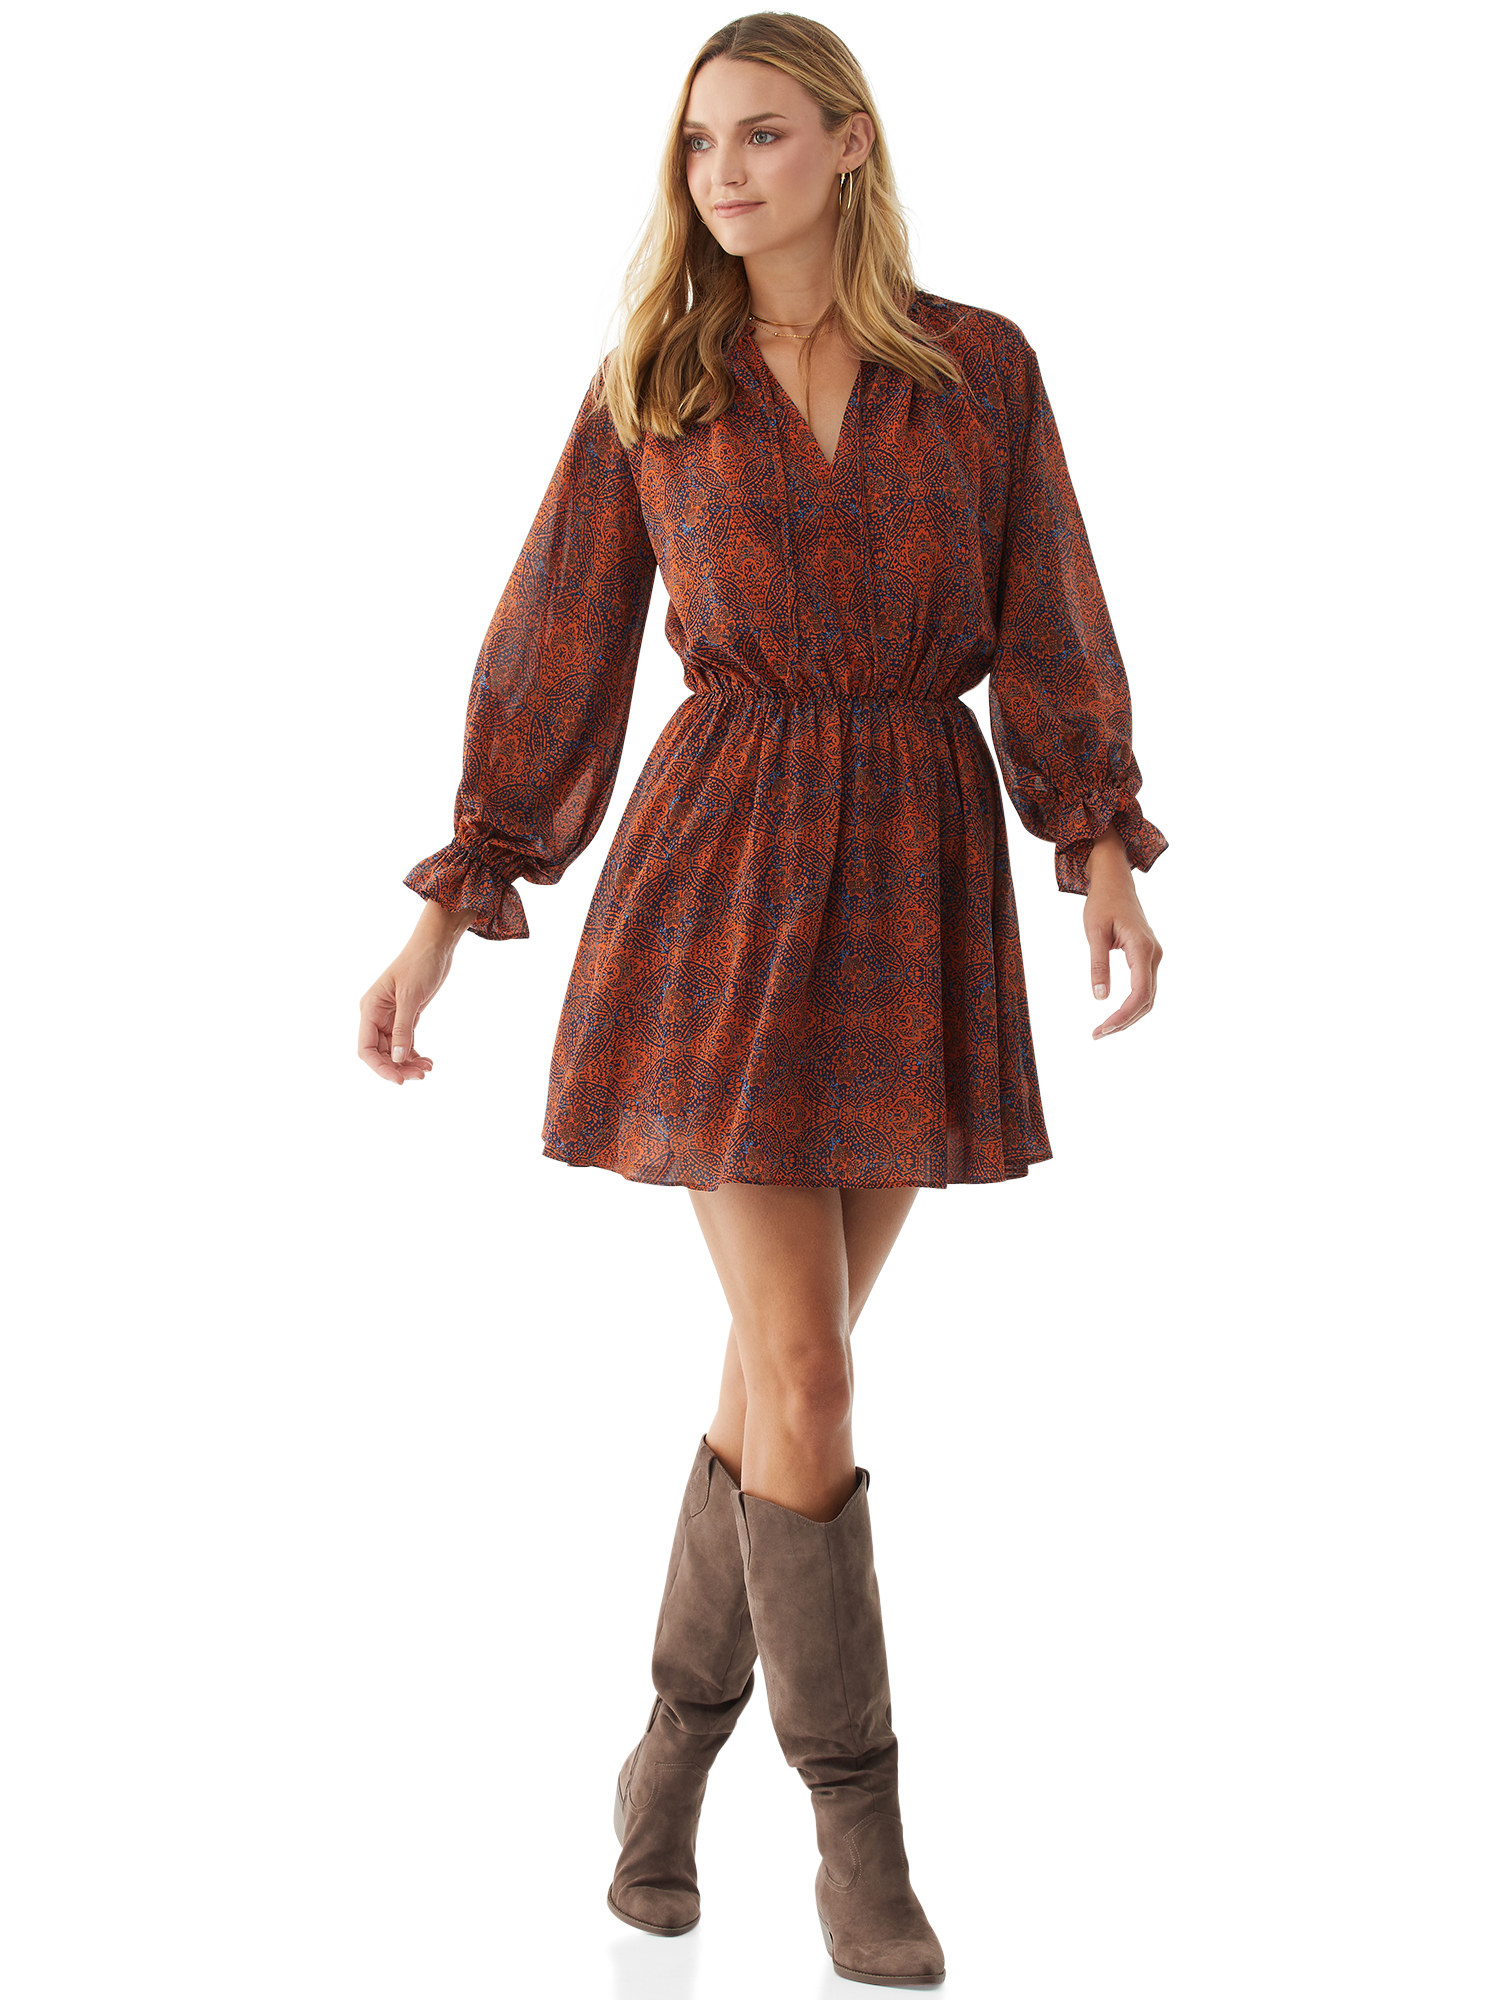 Rust-colored lined mini dress